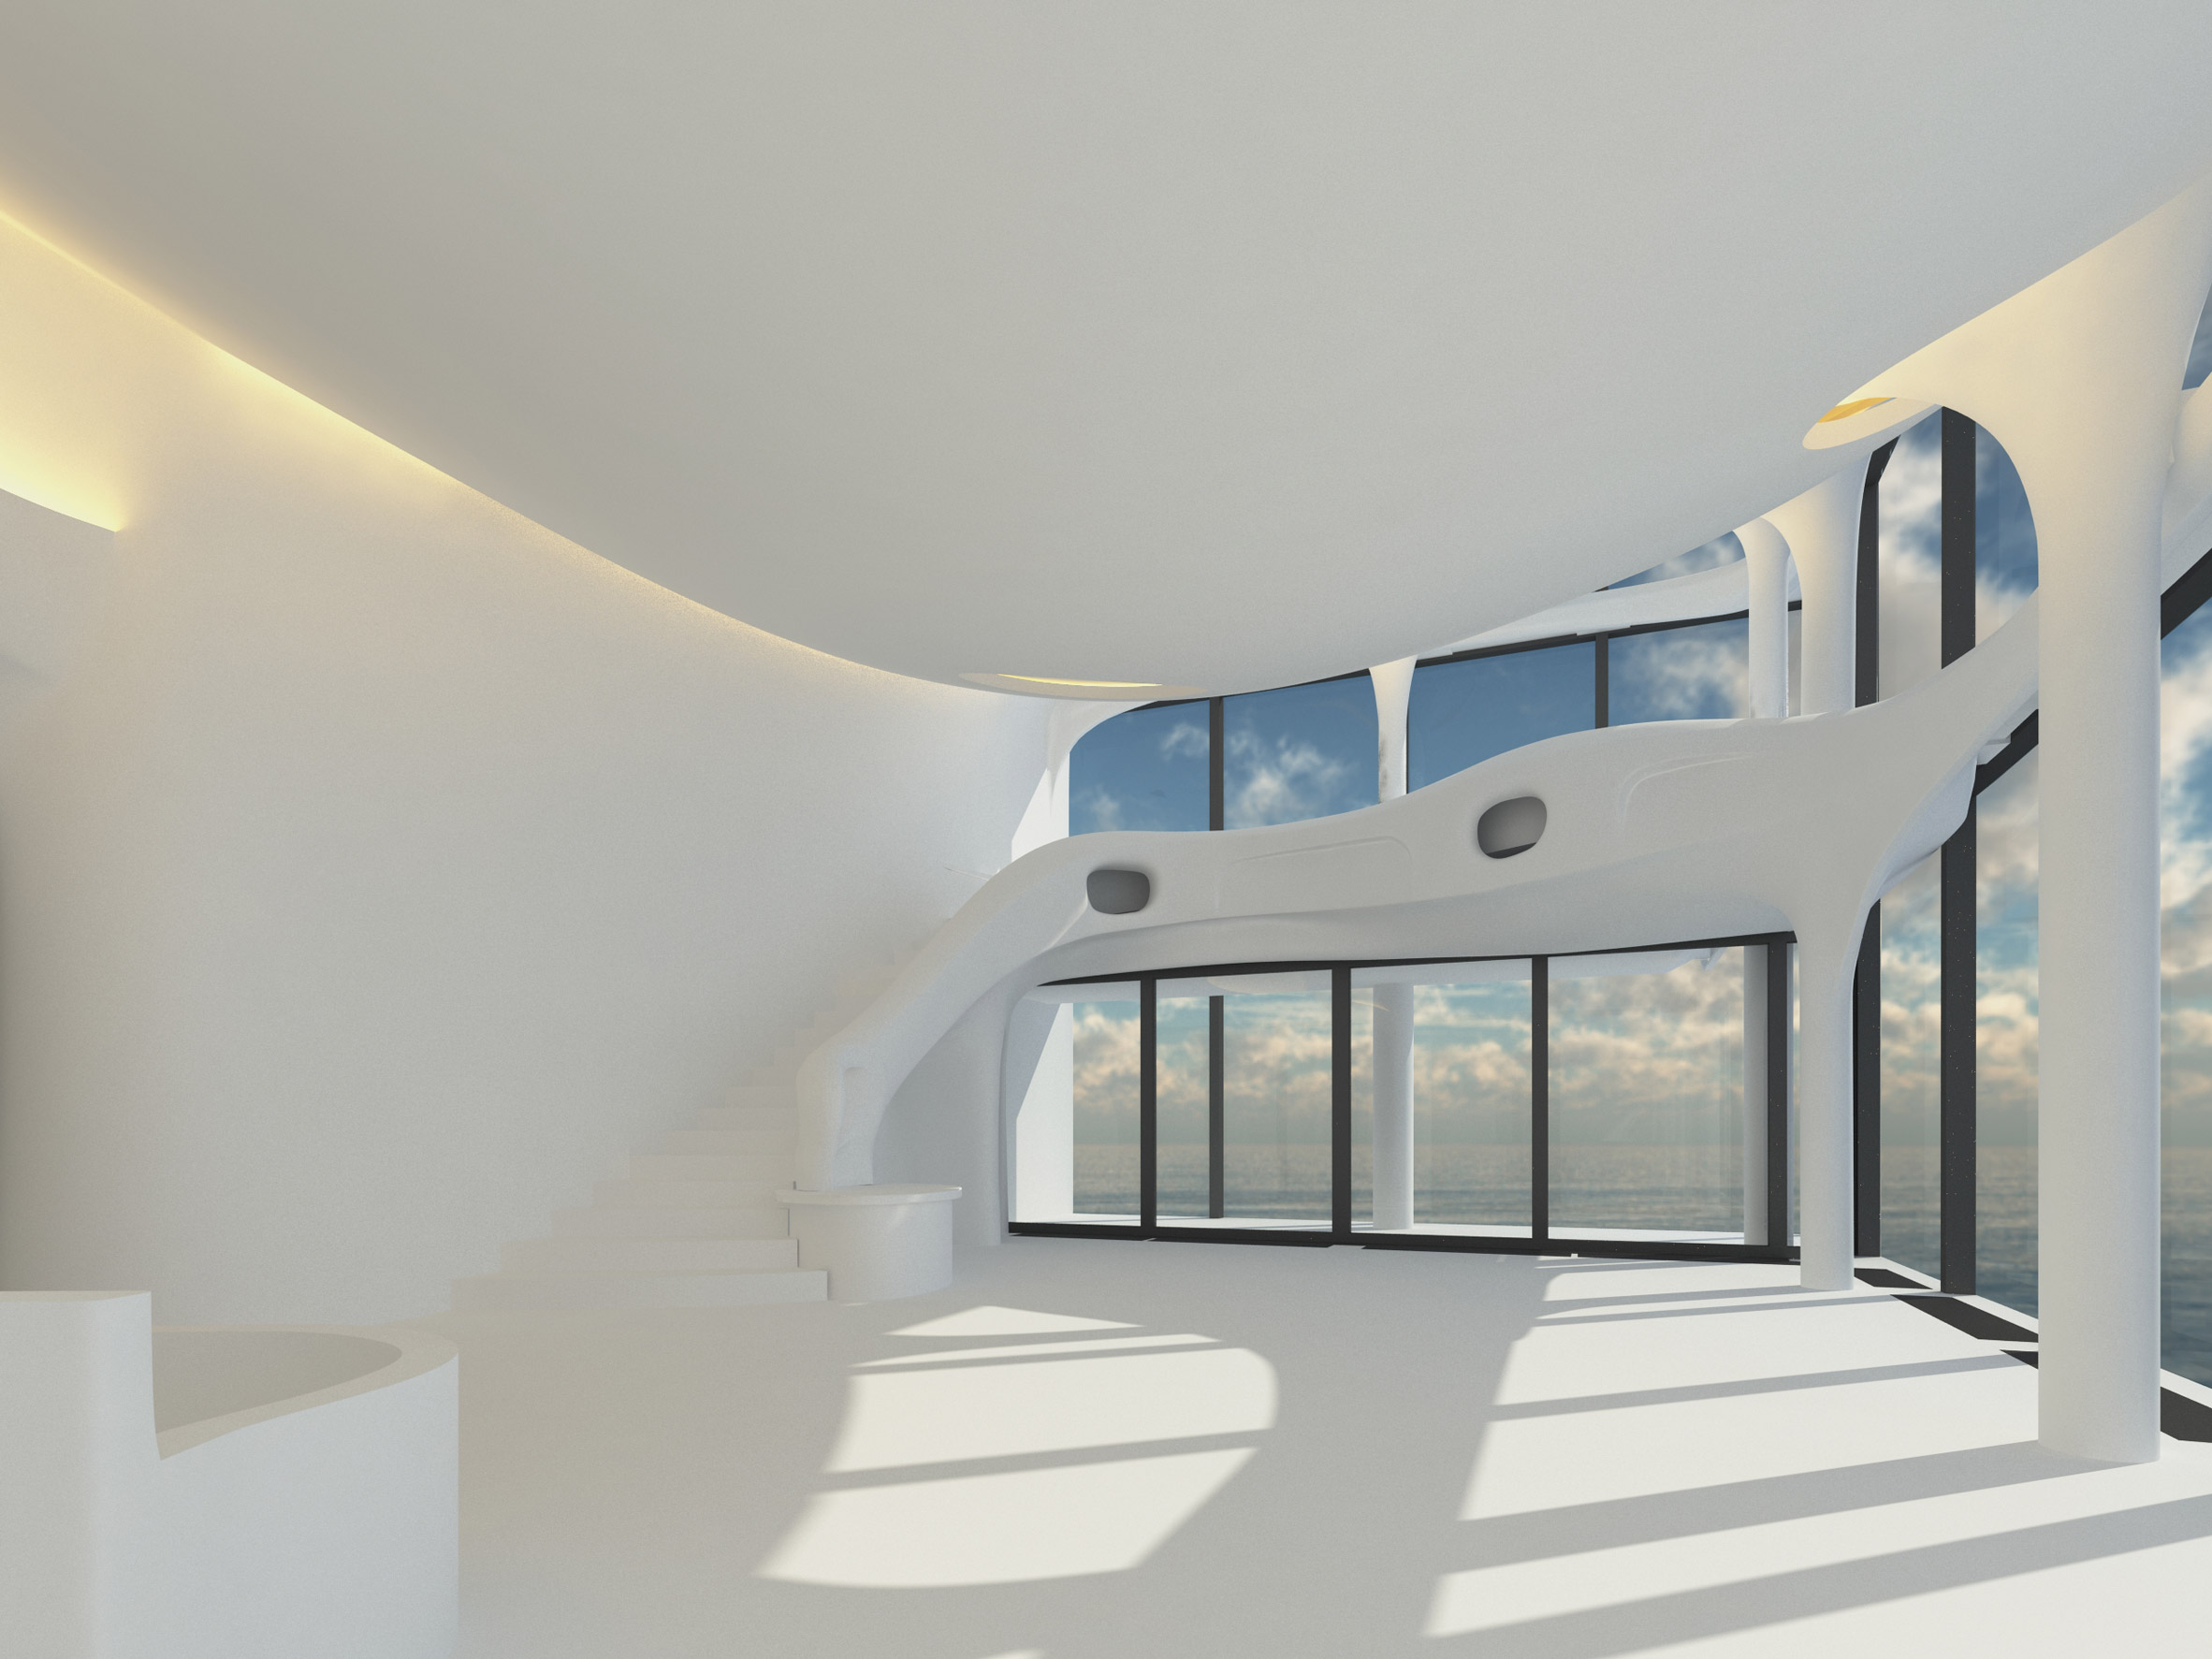 Luxury penthouse to be installed in Herzog & de Meuron's Elbphilharmonie Hamburg